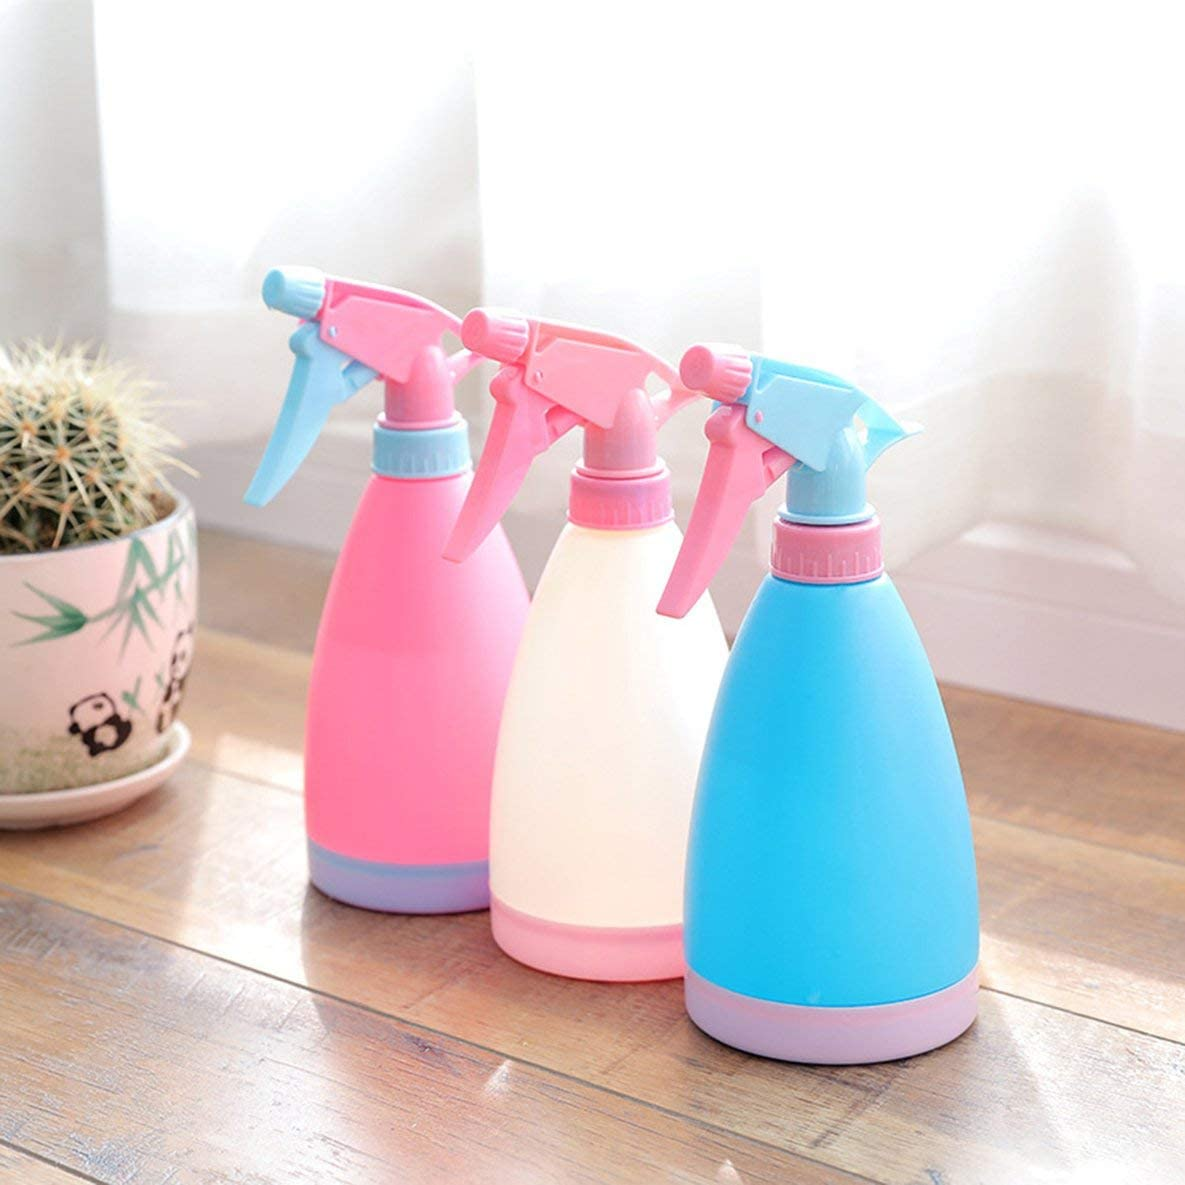 Shengerm Candy Color Gardening Home Watering Can Pneumatic Watering Flower Small Spray Bottle Sprayer Watering Spray Bottle